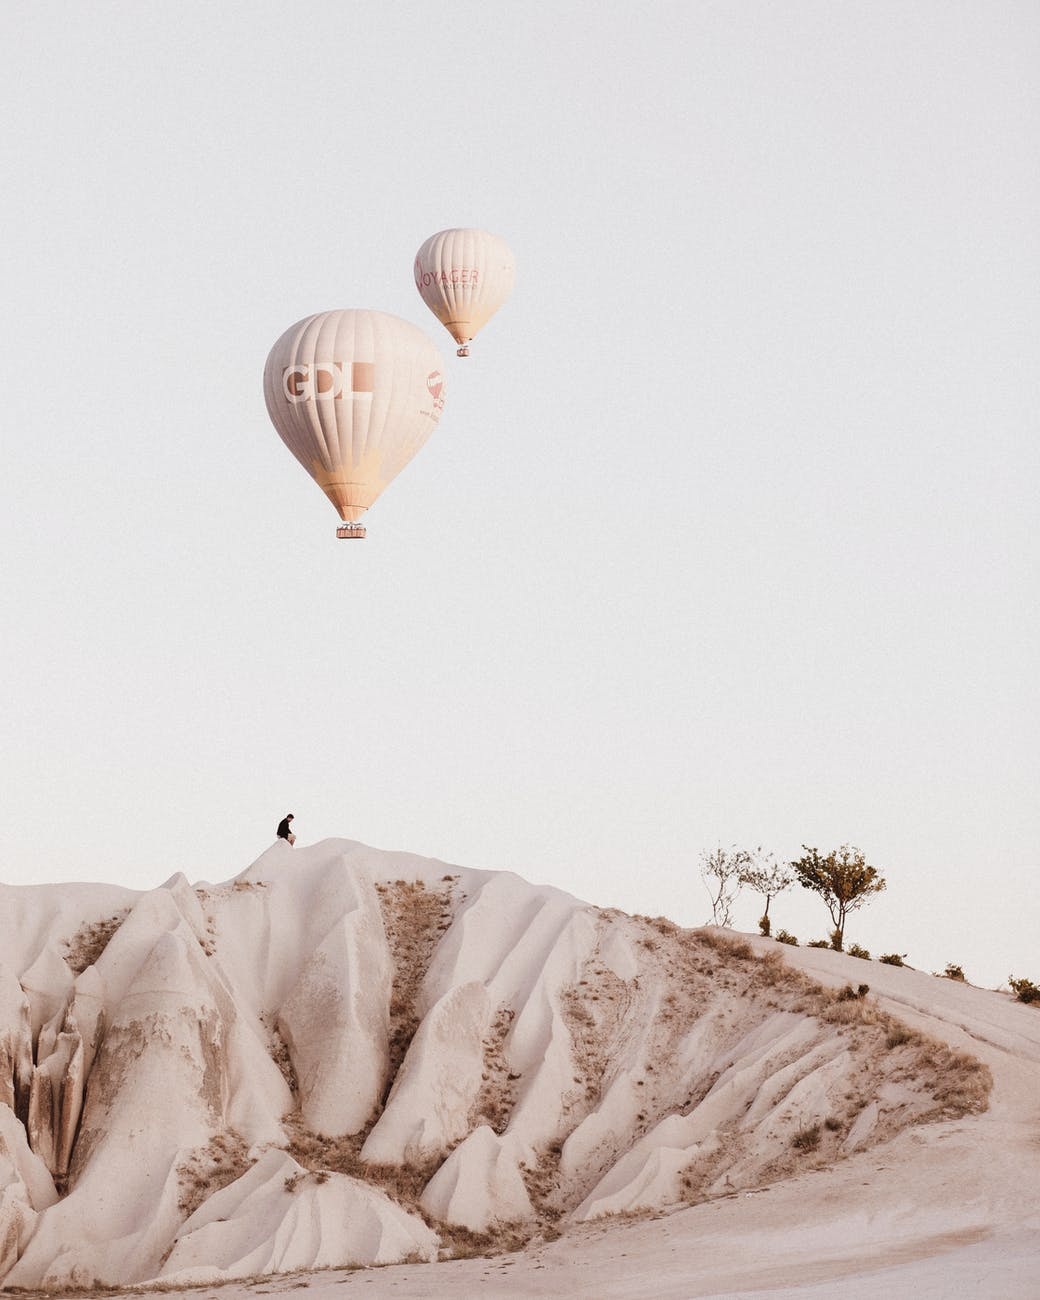 Peaceful image of hot air balloons drifting over the desert in Turkey.